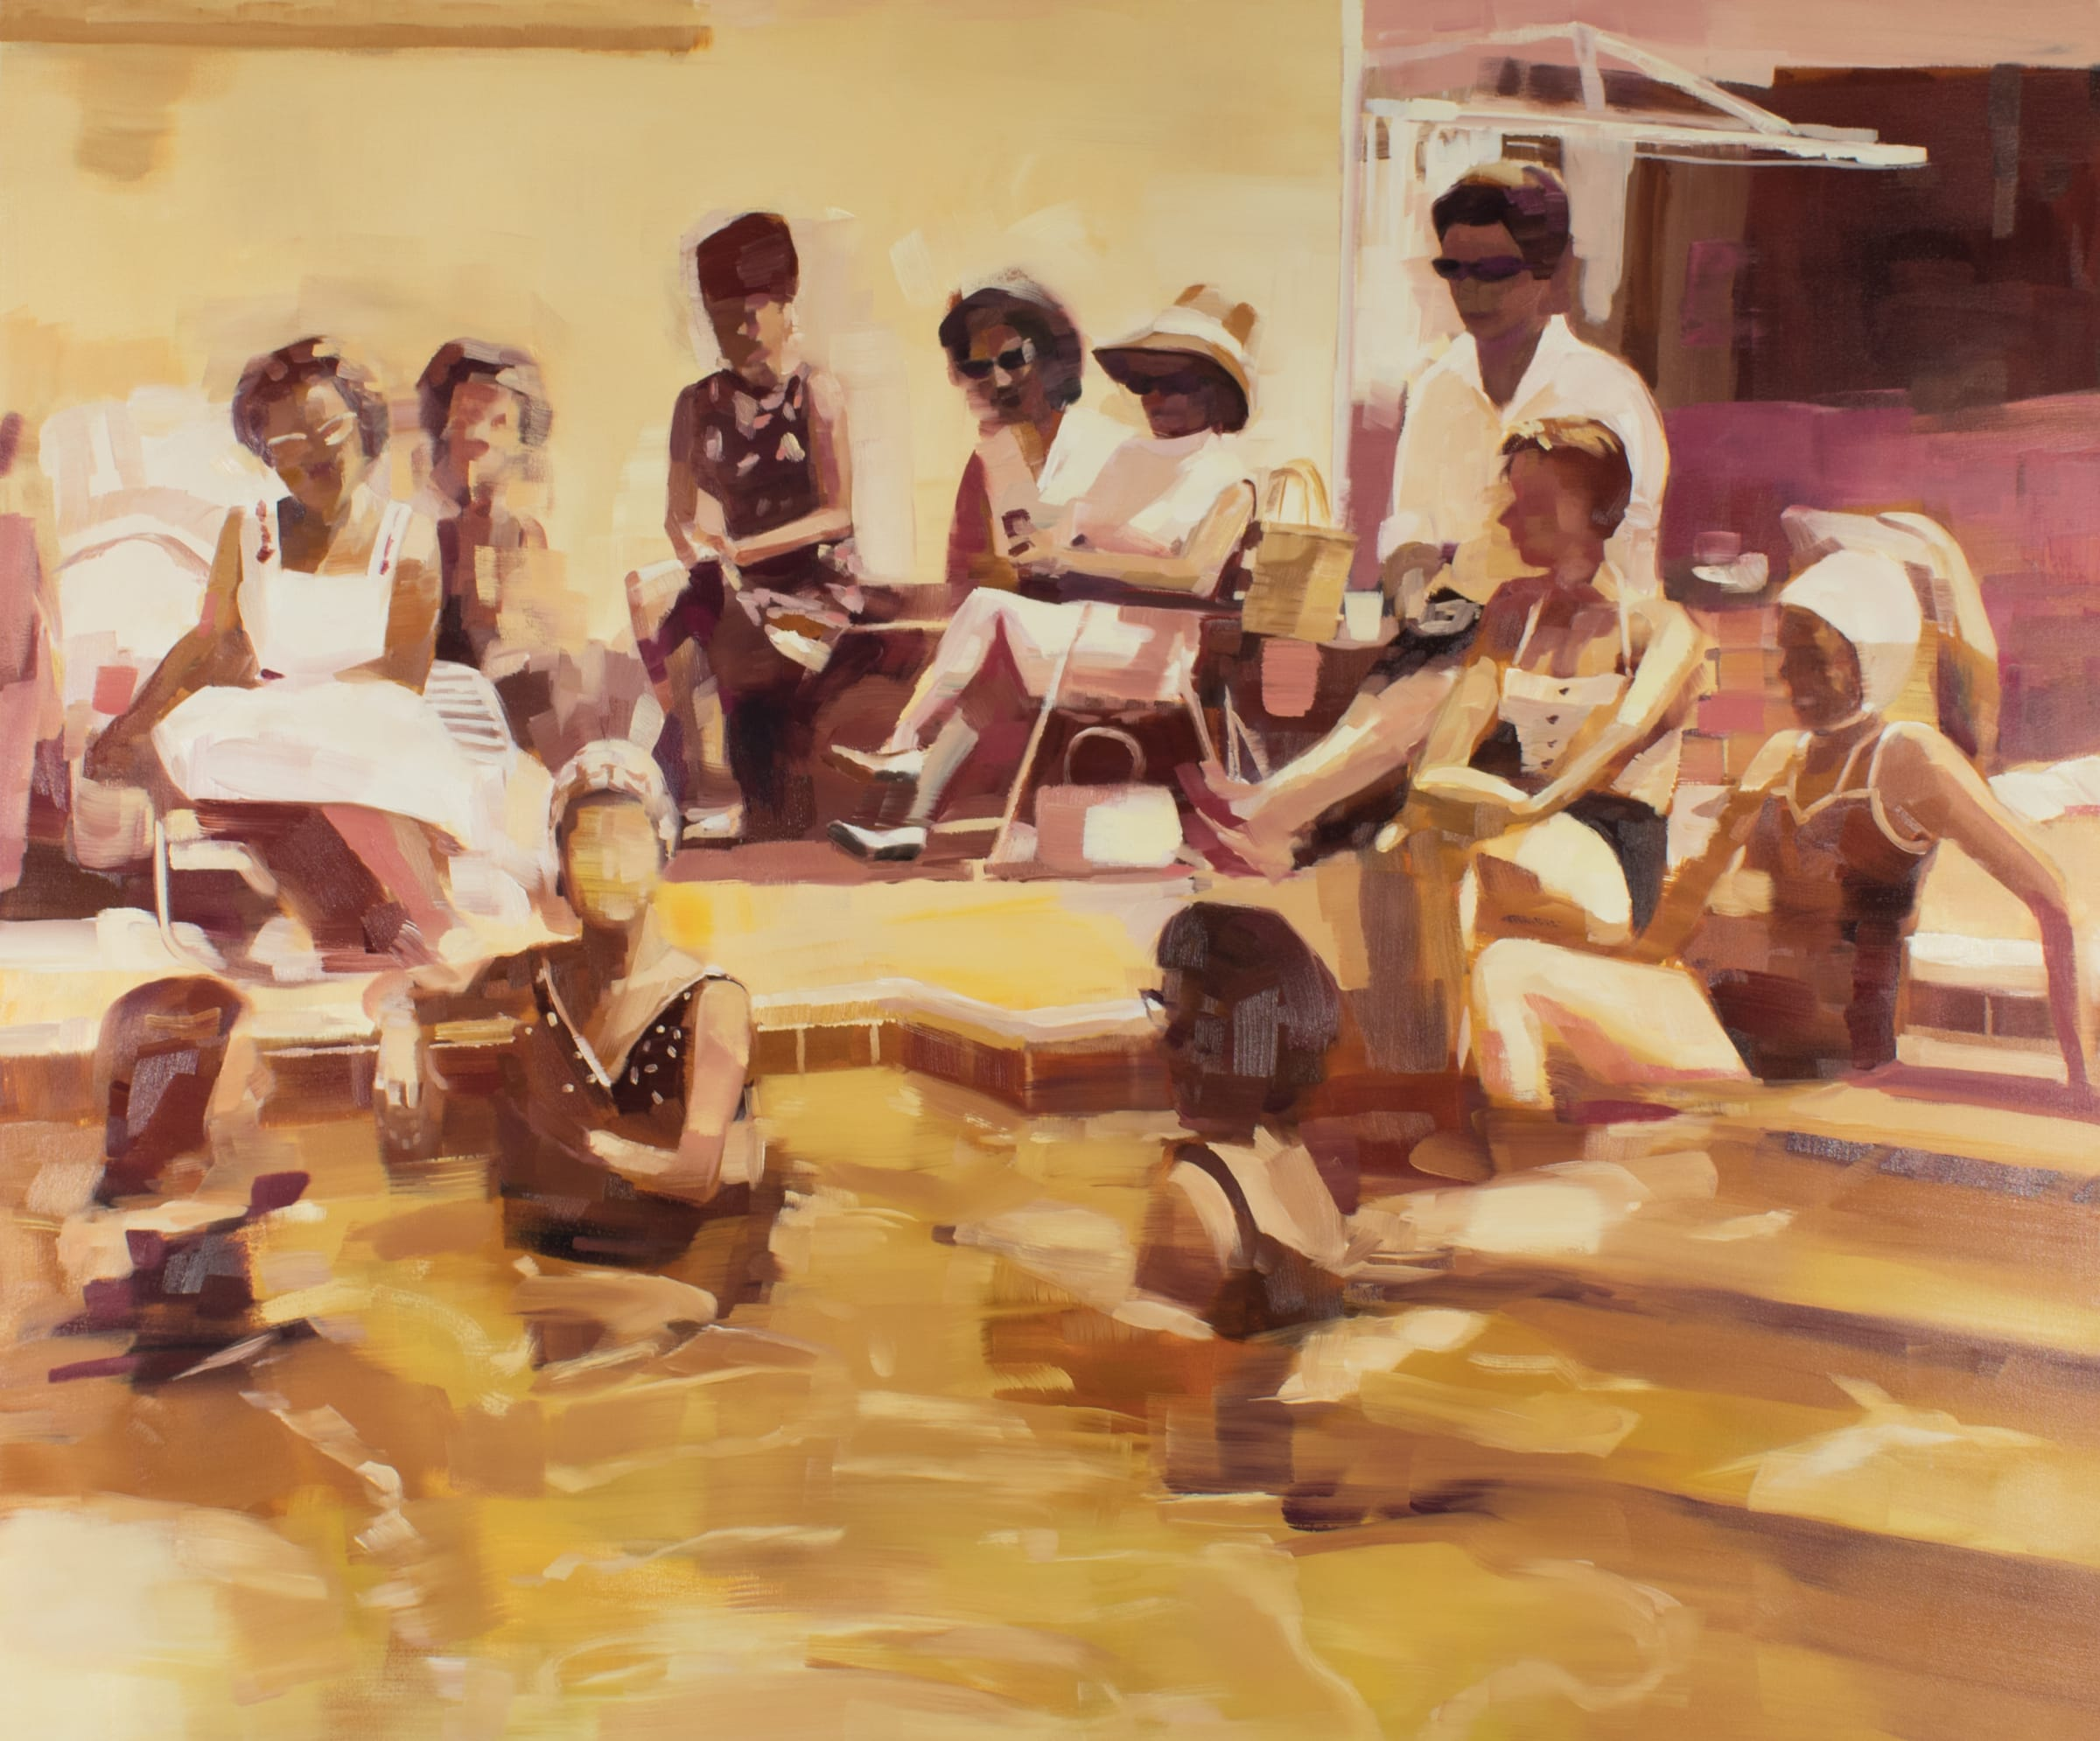 """<span class=""""link fancybox-details-link""""><a href=""""/artists/89-kirsten-tradowsky/works/1237-kirsten-tradowsky-ladies-lounging-poolside/"""">View Detail Page</a></span><div class=""""artist""""><strong>Kirsten Tradowsky</strong></div> <div class=""""title""""><em>Ladies Lounging Poolside</em></div> <div class=""""medium"""">Oil on canvas</div> <div class=""""dimensions"""">50 x 60 inches</div>"""